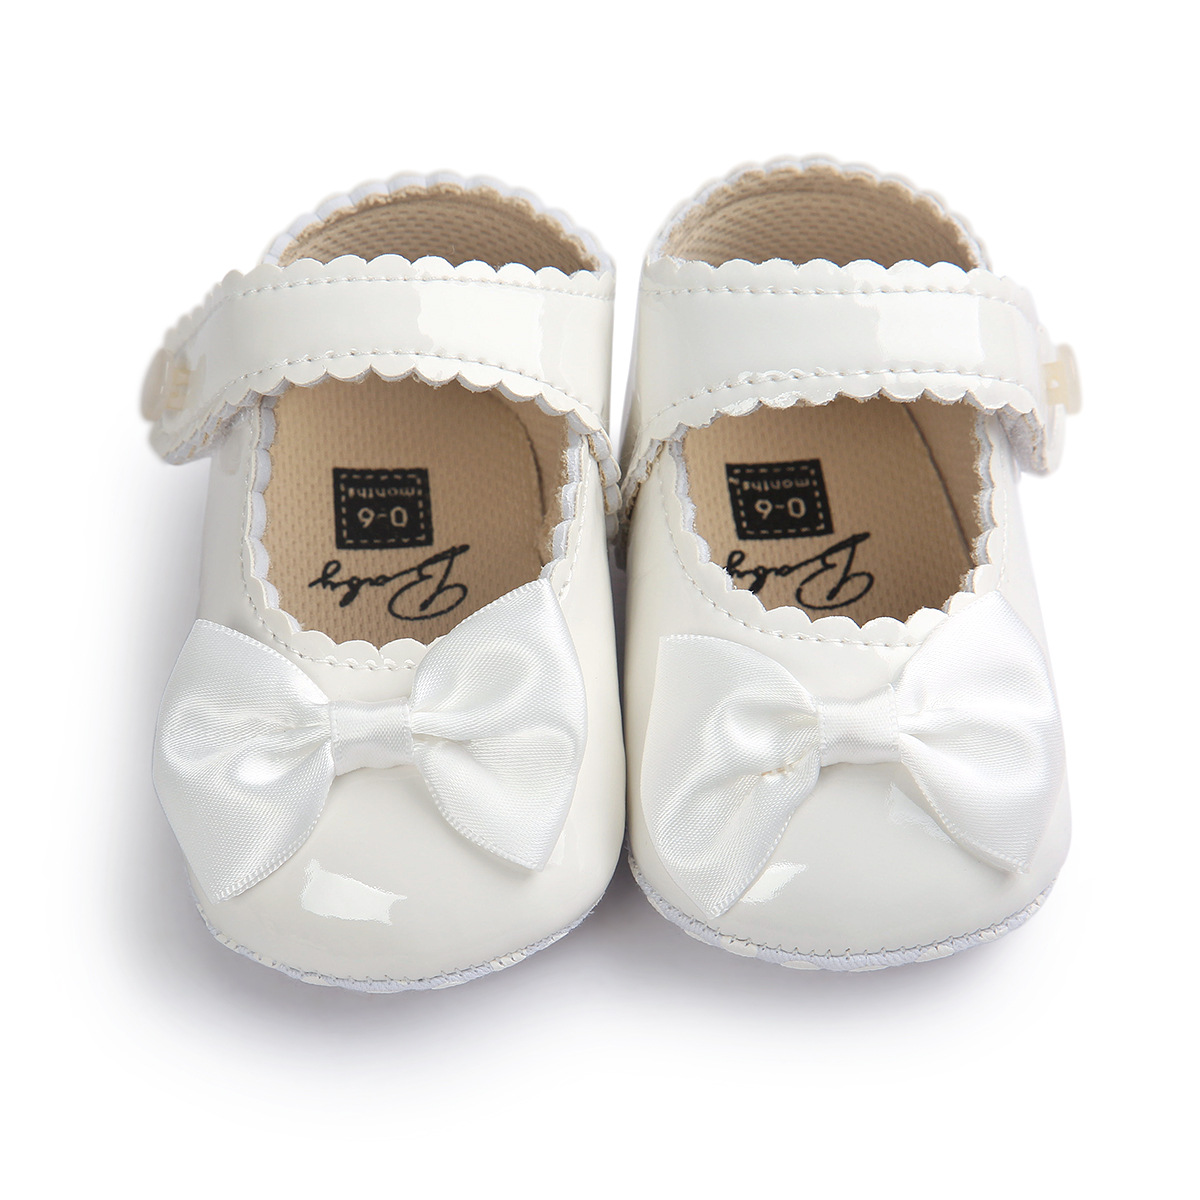 White Baby Shoes Princess Bow Girl Baby Toddler Shoes PU Leather Casual Soft Non-slip Newborn Shoes First Walker